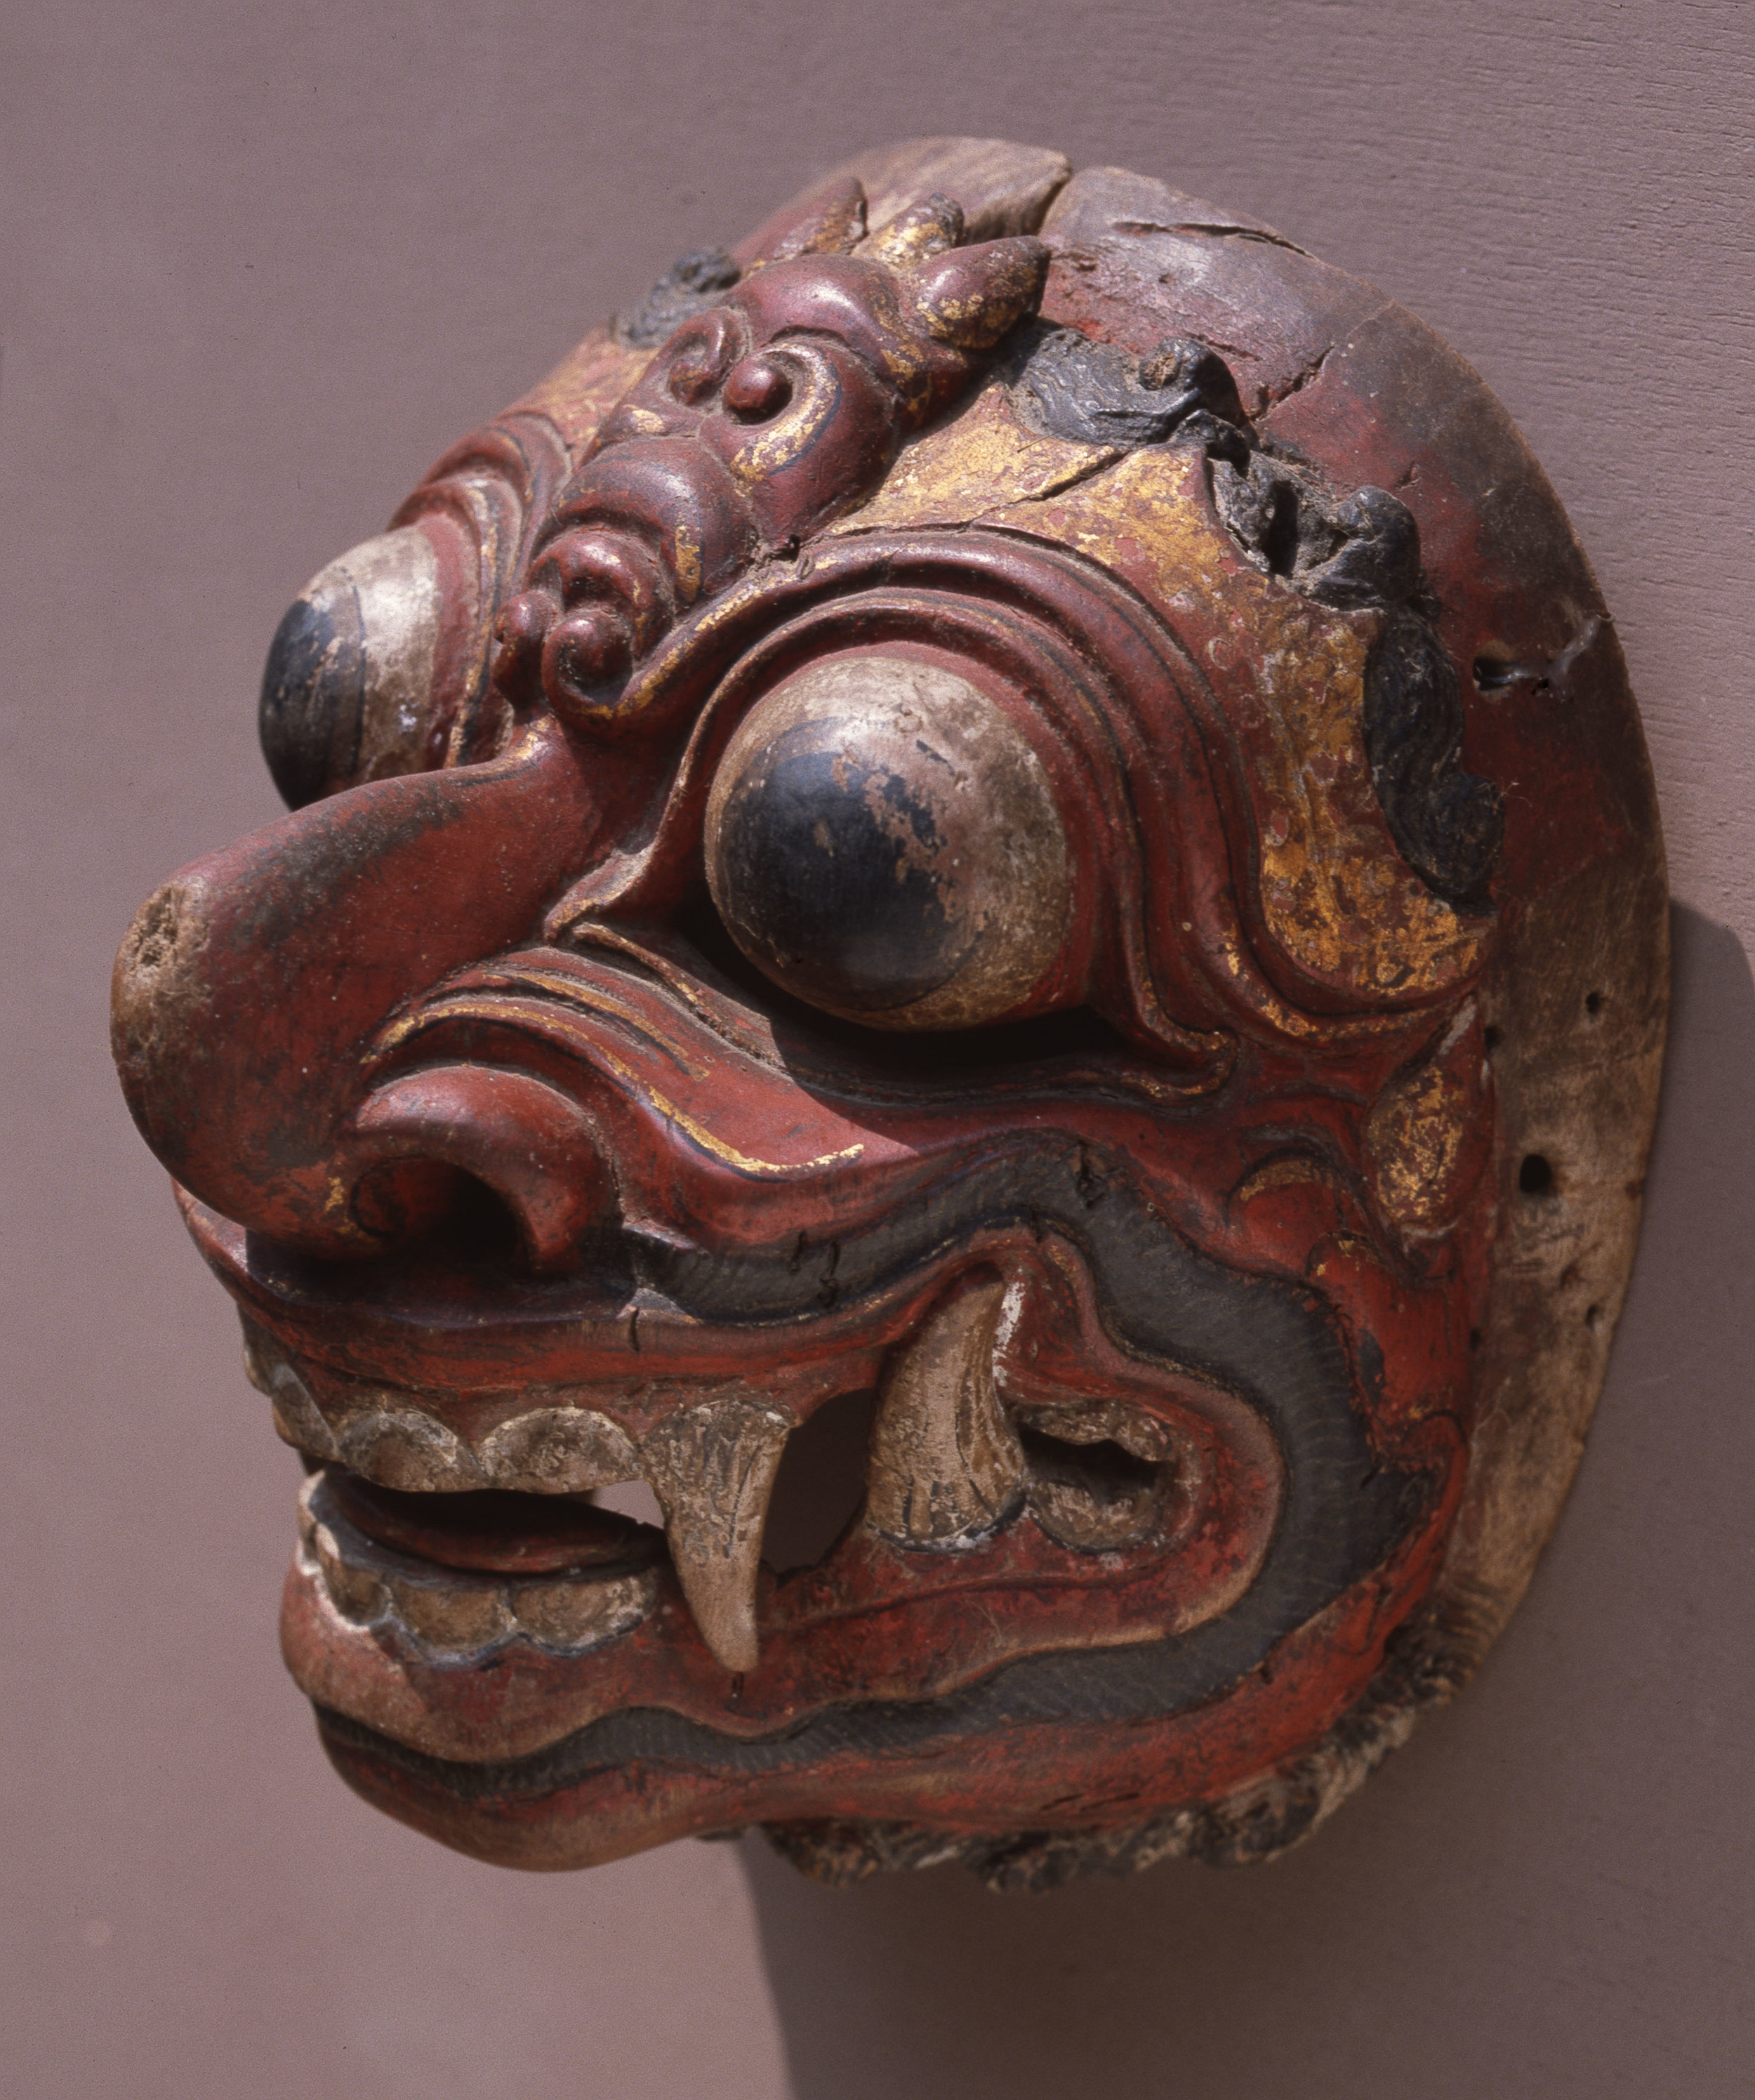 A mask representing a demon, used in wayang wong performances of the Hindu epics, especially the Ramayana. Country of Origin: Indonesia. Culture: Balinese. Date/Period: 1982 Place of Origin: Bali. Material Size: Wood, paint, fabric, metal. Credit Line: Werner Forman Archive/Denpasar Museum, Bali.